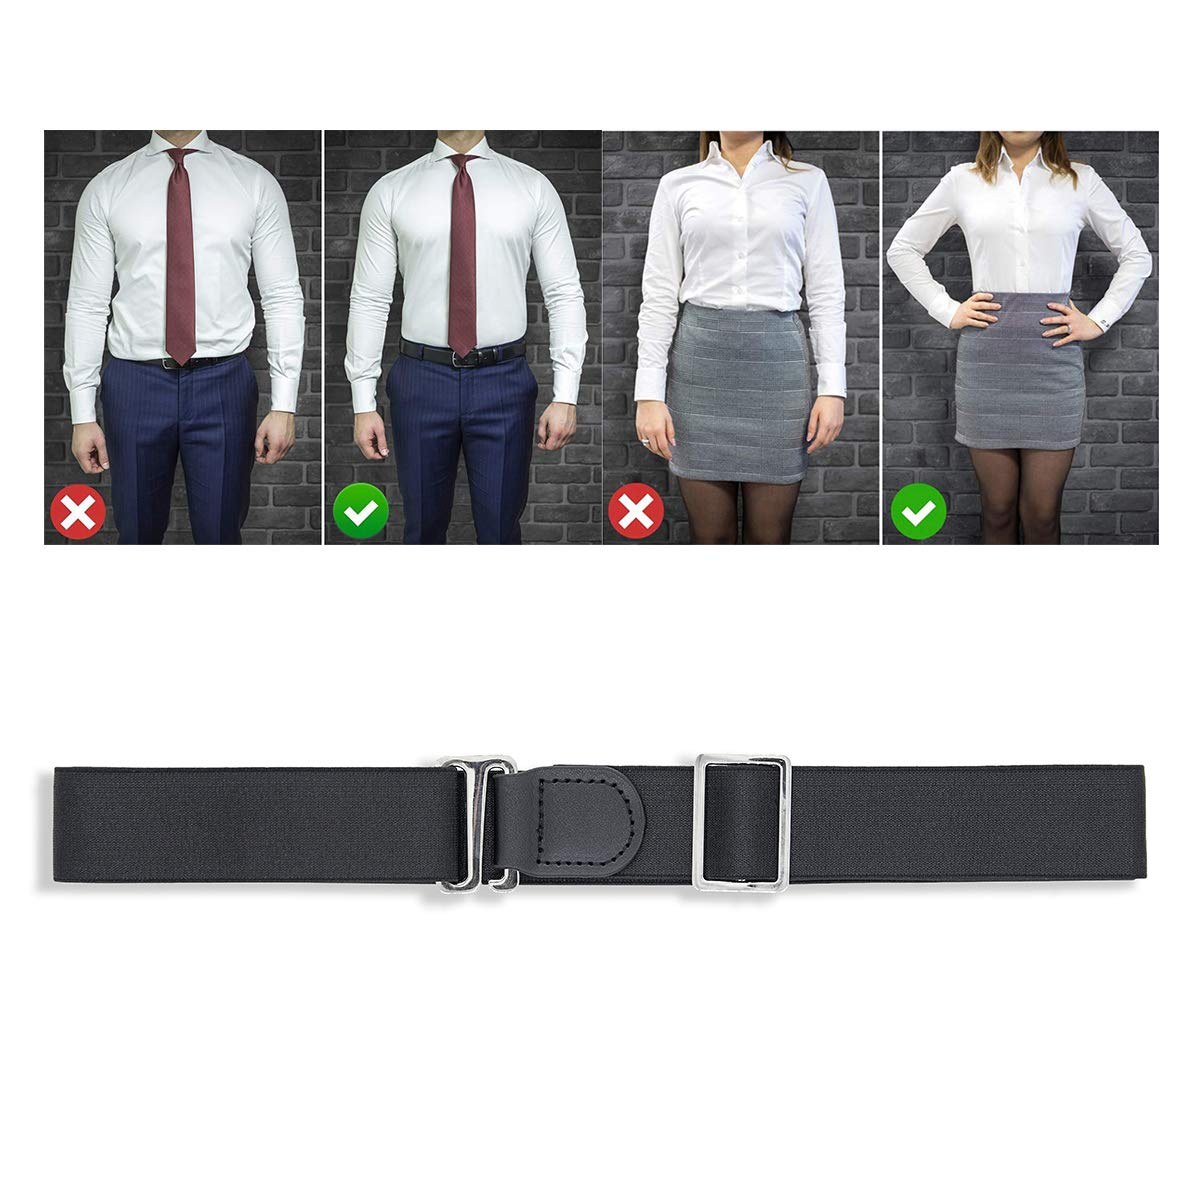 Shirt Stays Belt MLM Belt for Formal and Professional Attire Keeps Shirt Tucked in